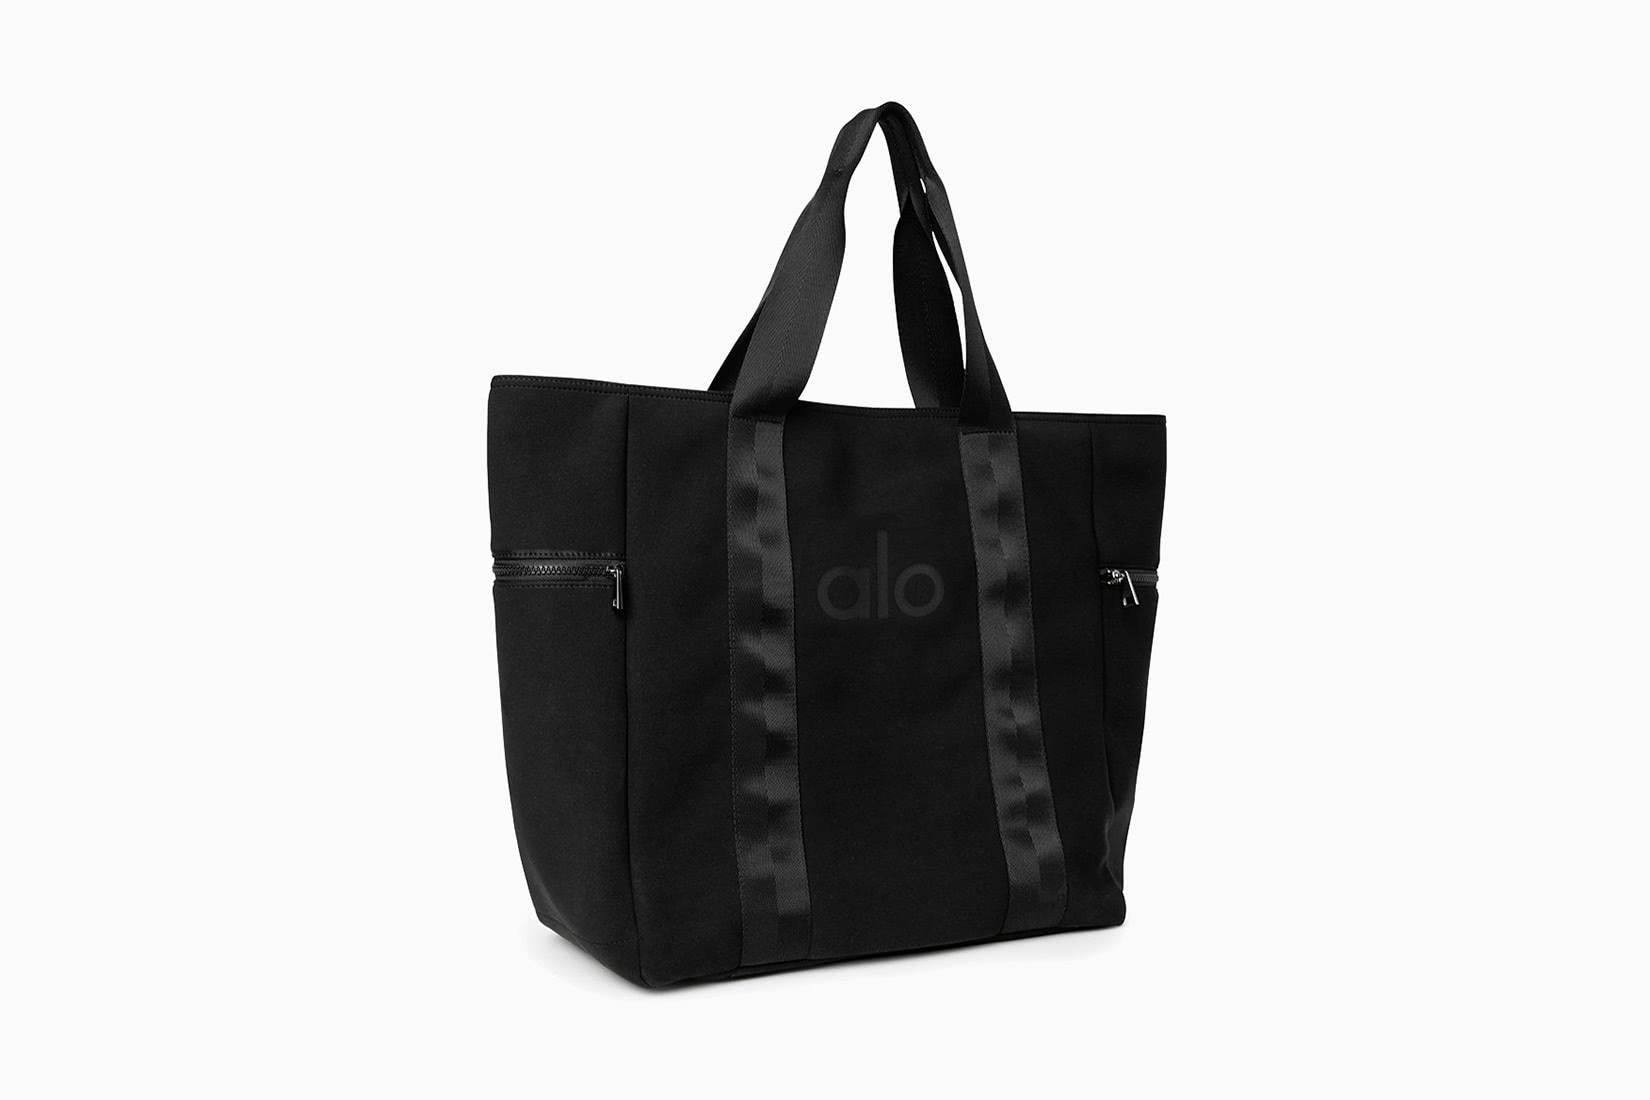 best women gym bag tote alo yoga backpack - Luxe Digital